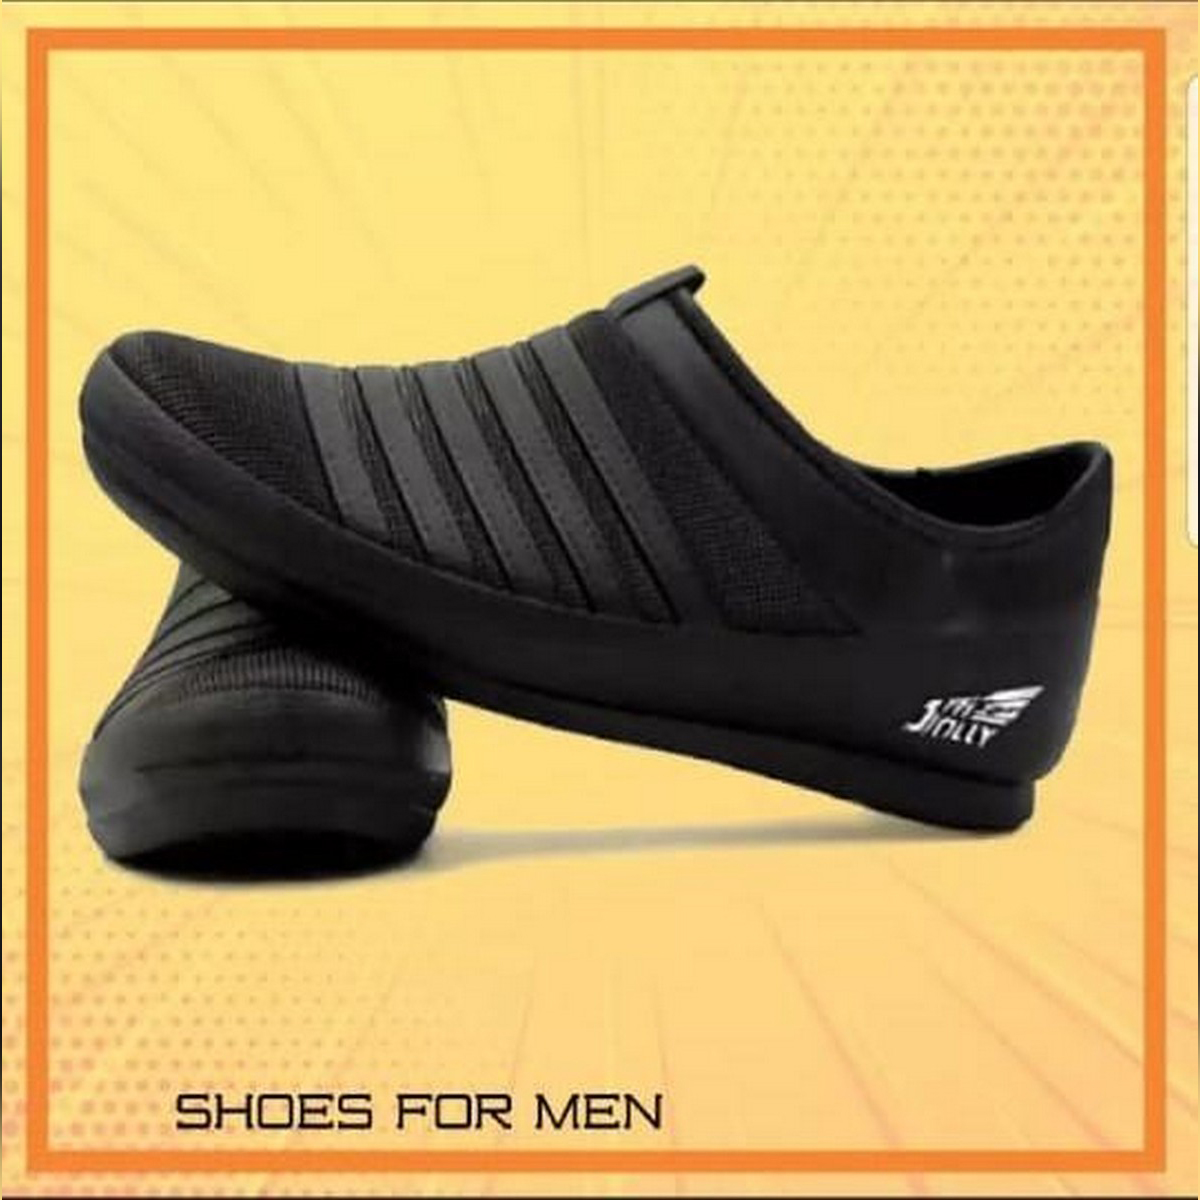 Stylish Rubber Shoes For Men